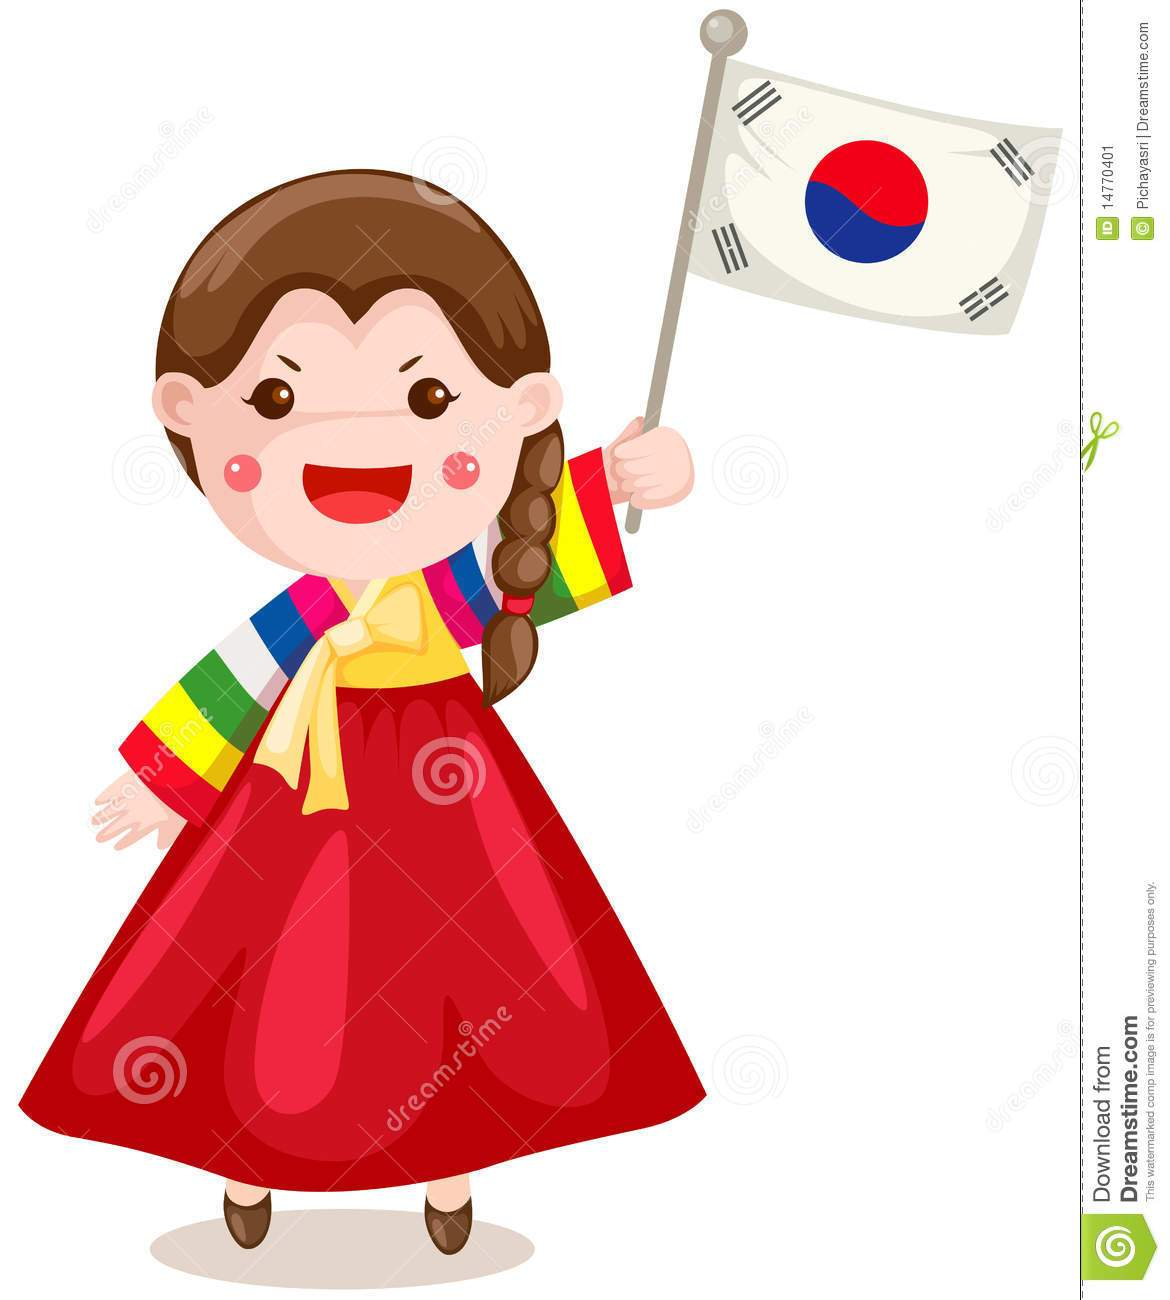 Cute korean clipart » Clipart Portal.